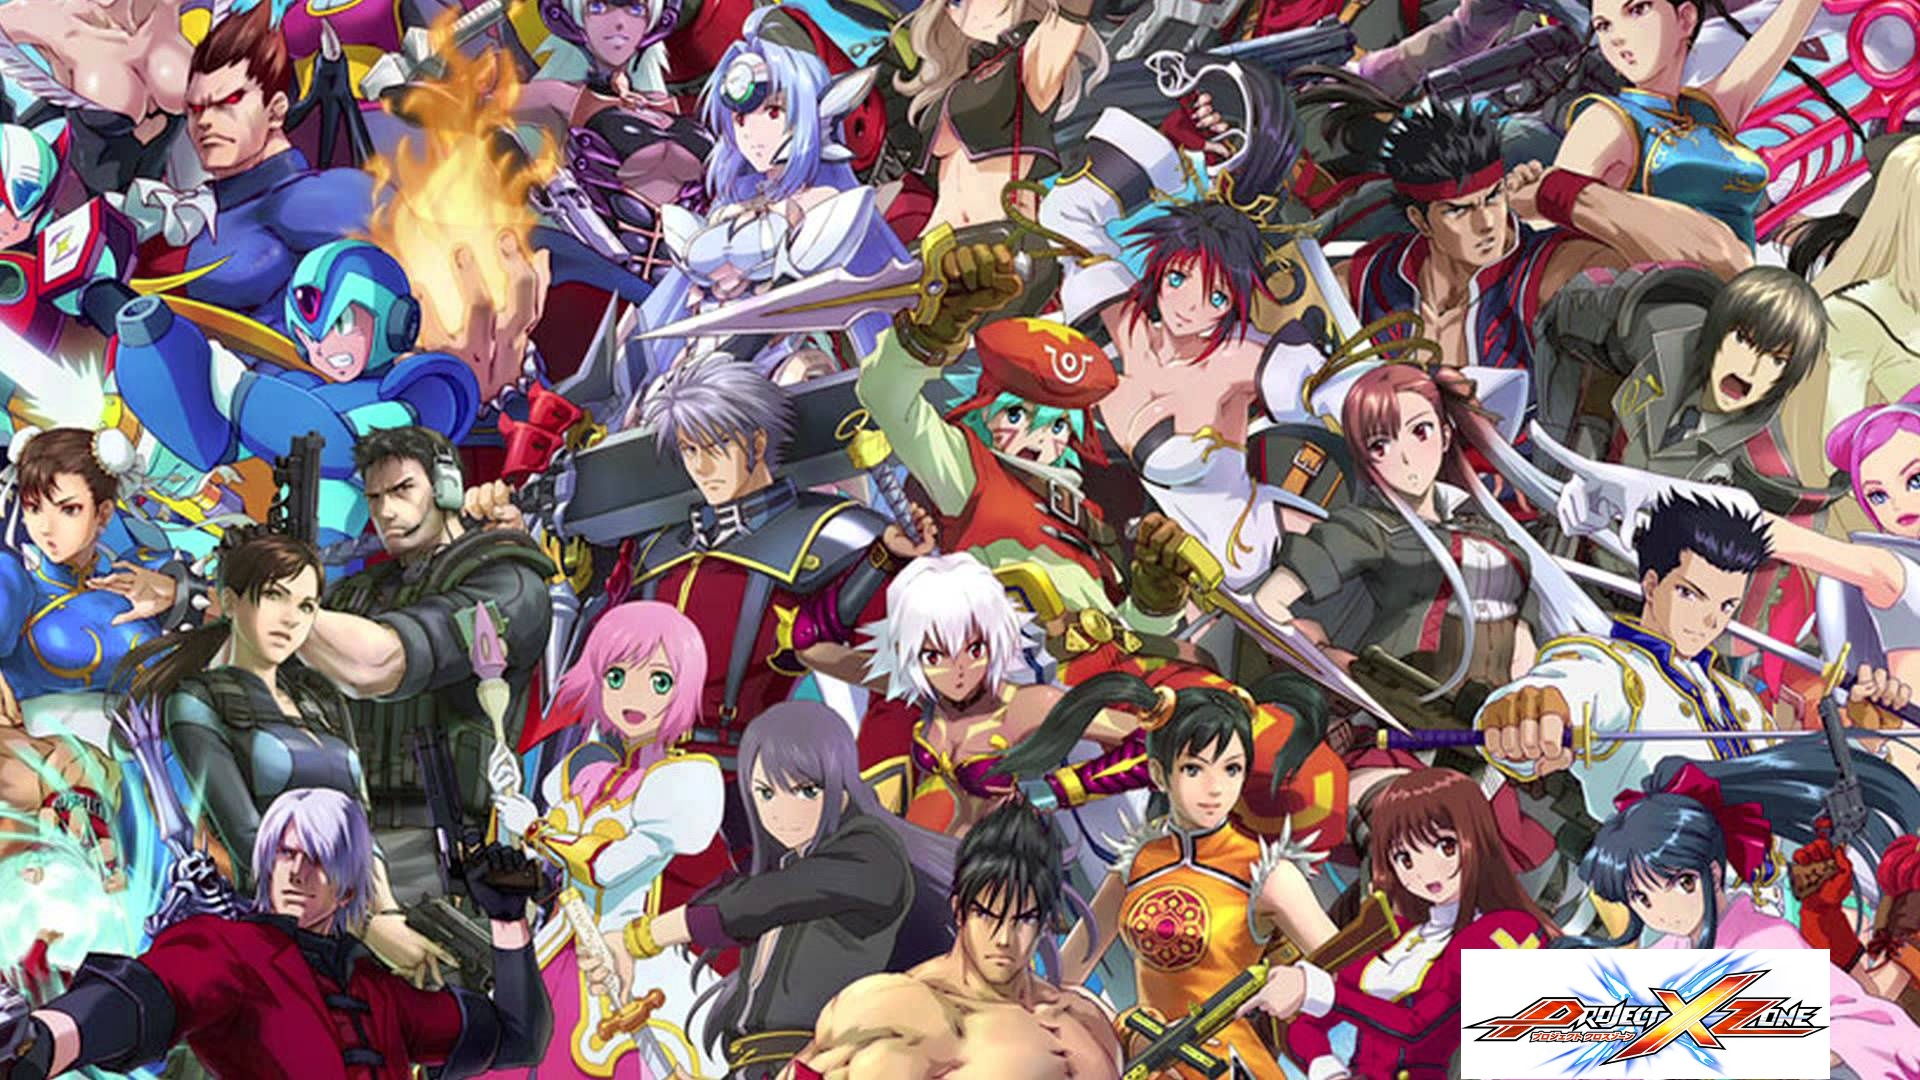 Project X Zone Ending